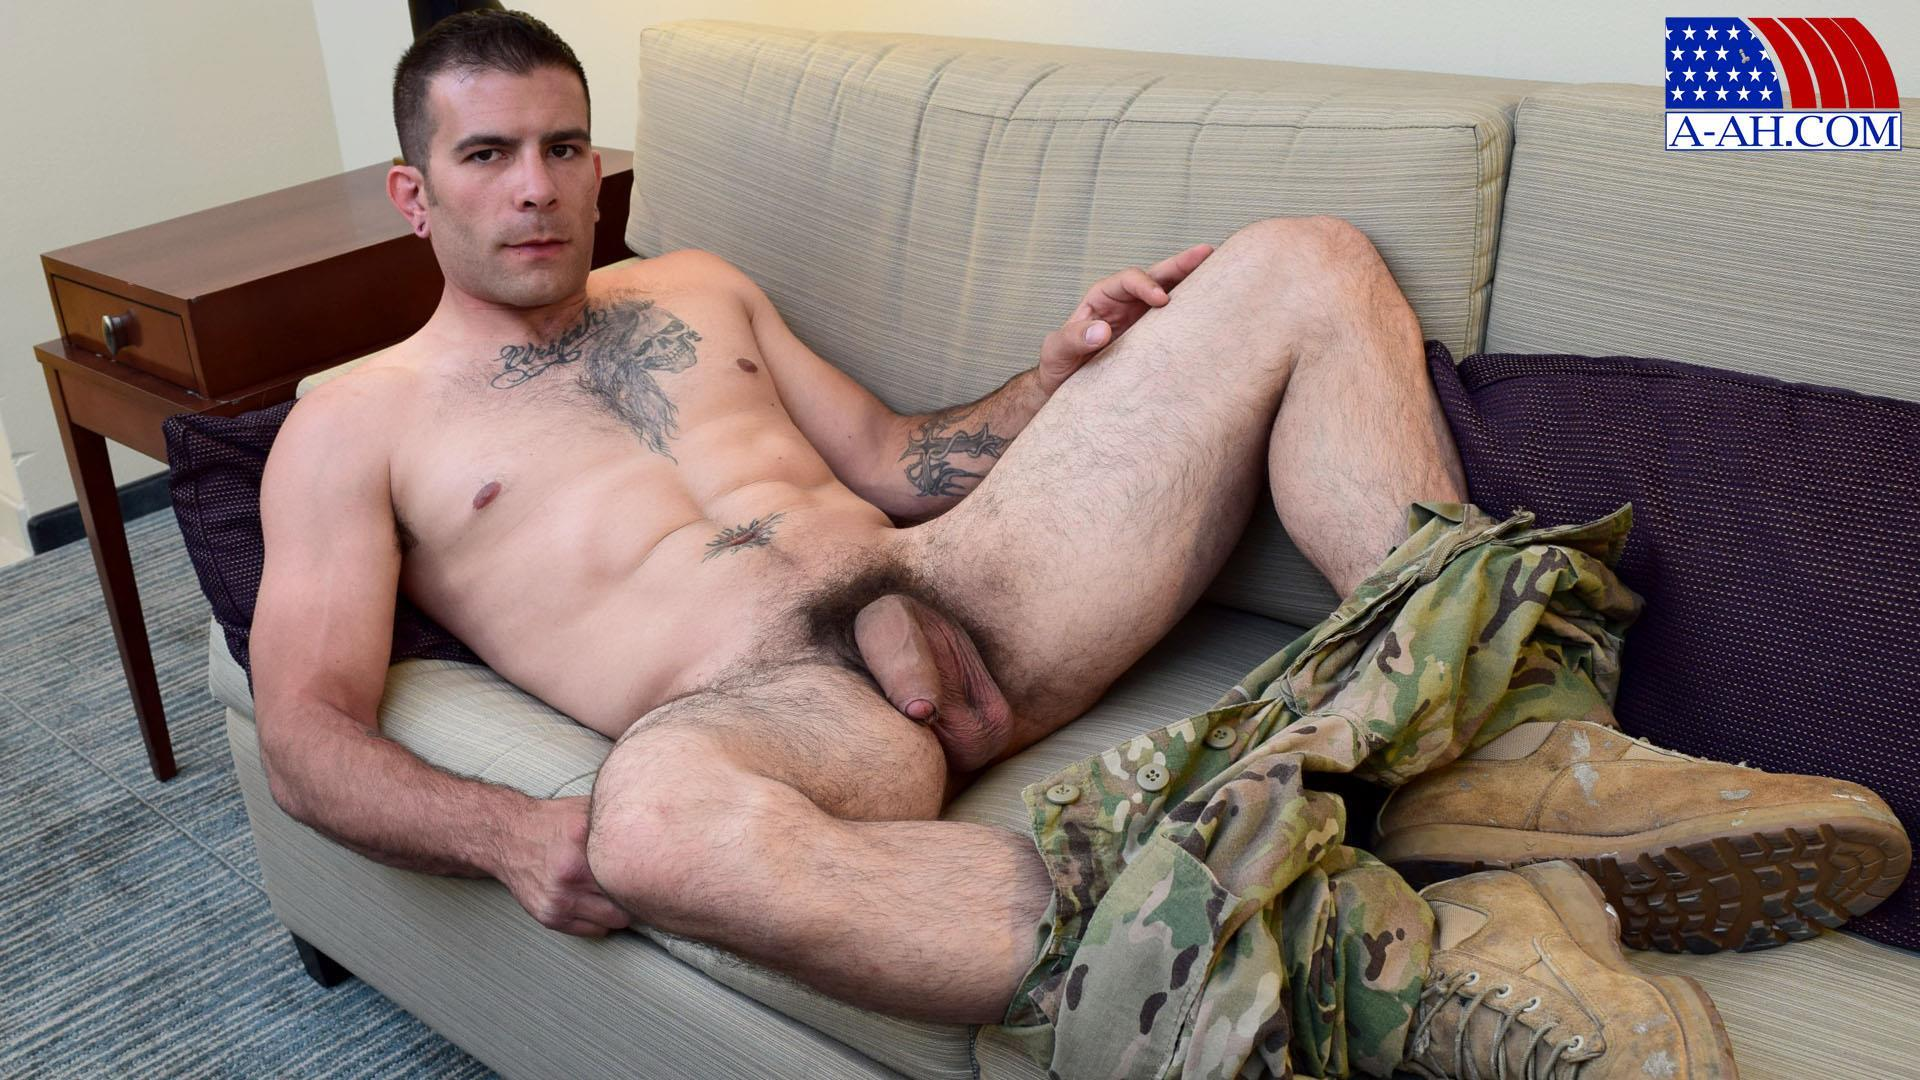 All American Heroes JB US Amry Soldier Jerking His Big Uncut Cock Amateur Gay Porn 09 Amateur Straight US Army Specialist Stroking His Big Uncut Cock